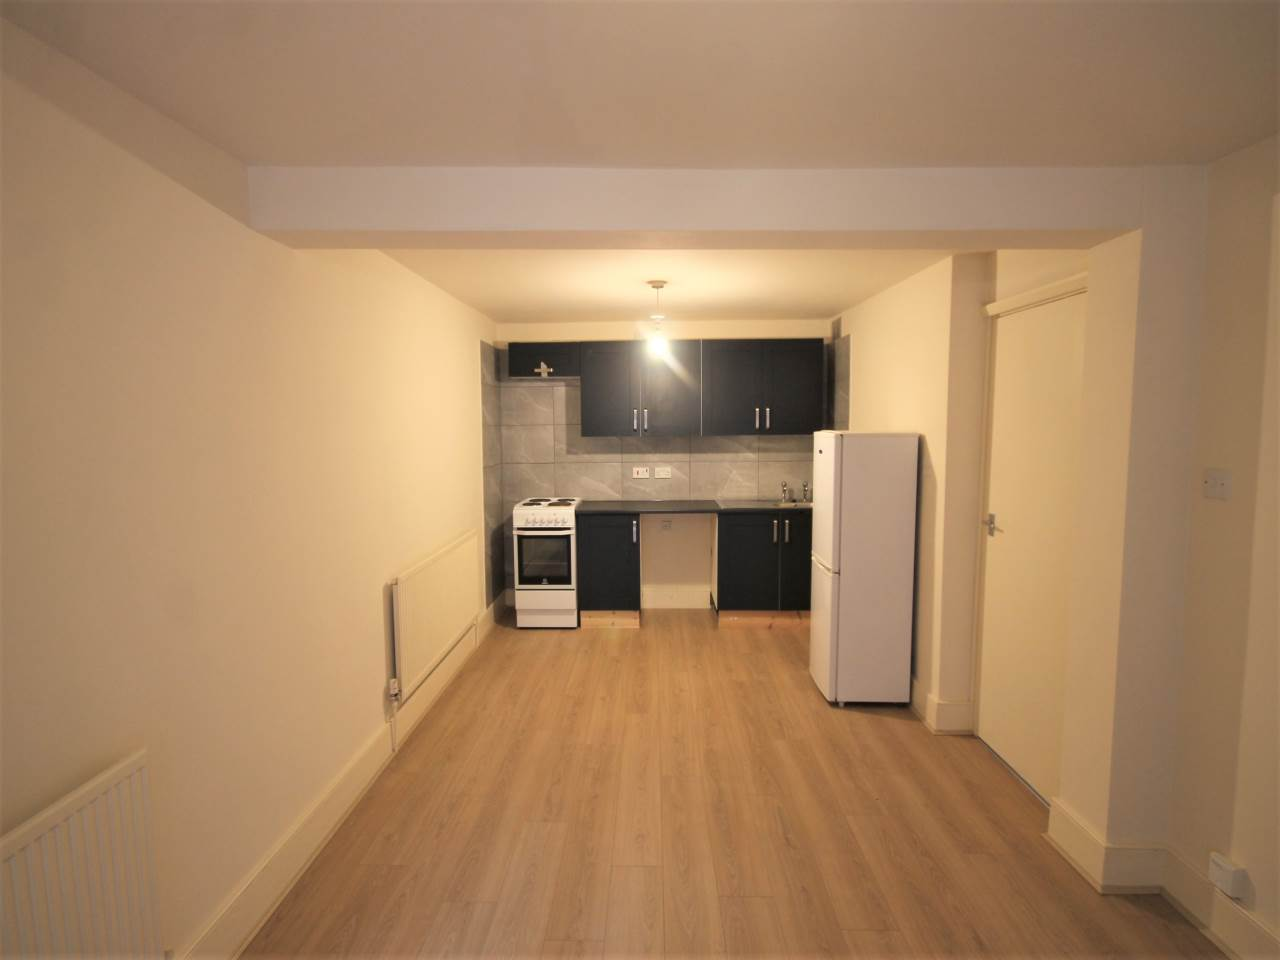 1 bed flat to rent in Grove Road, Bow, E3 5